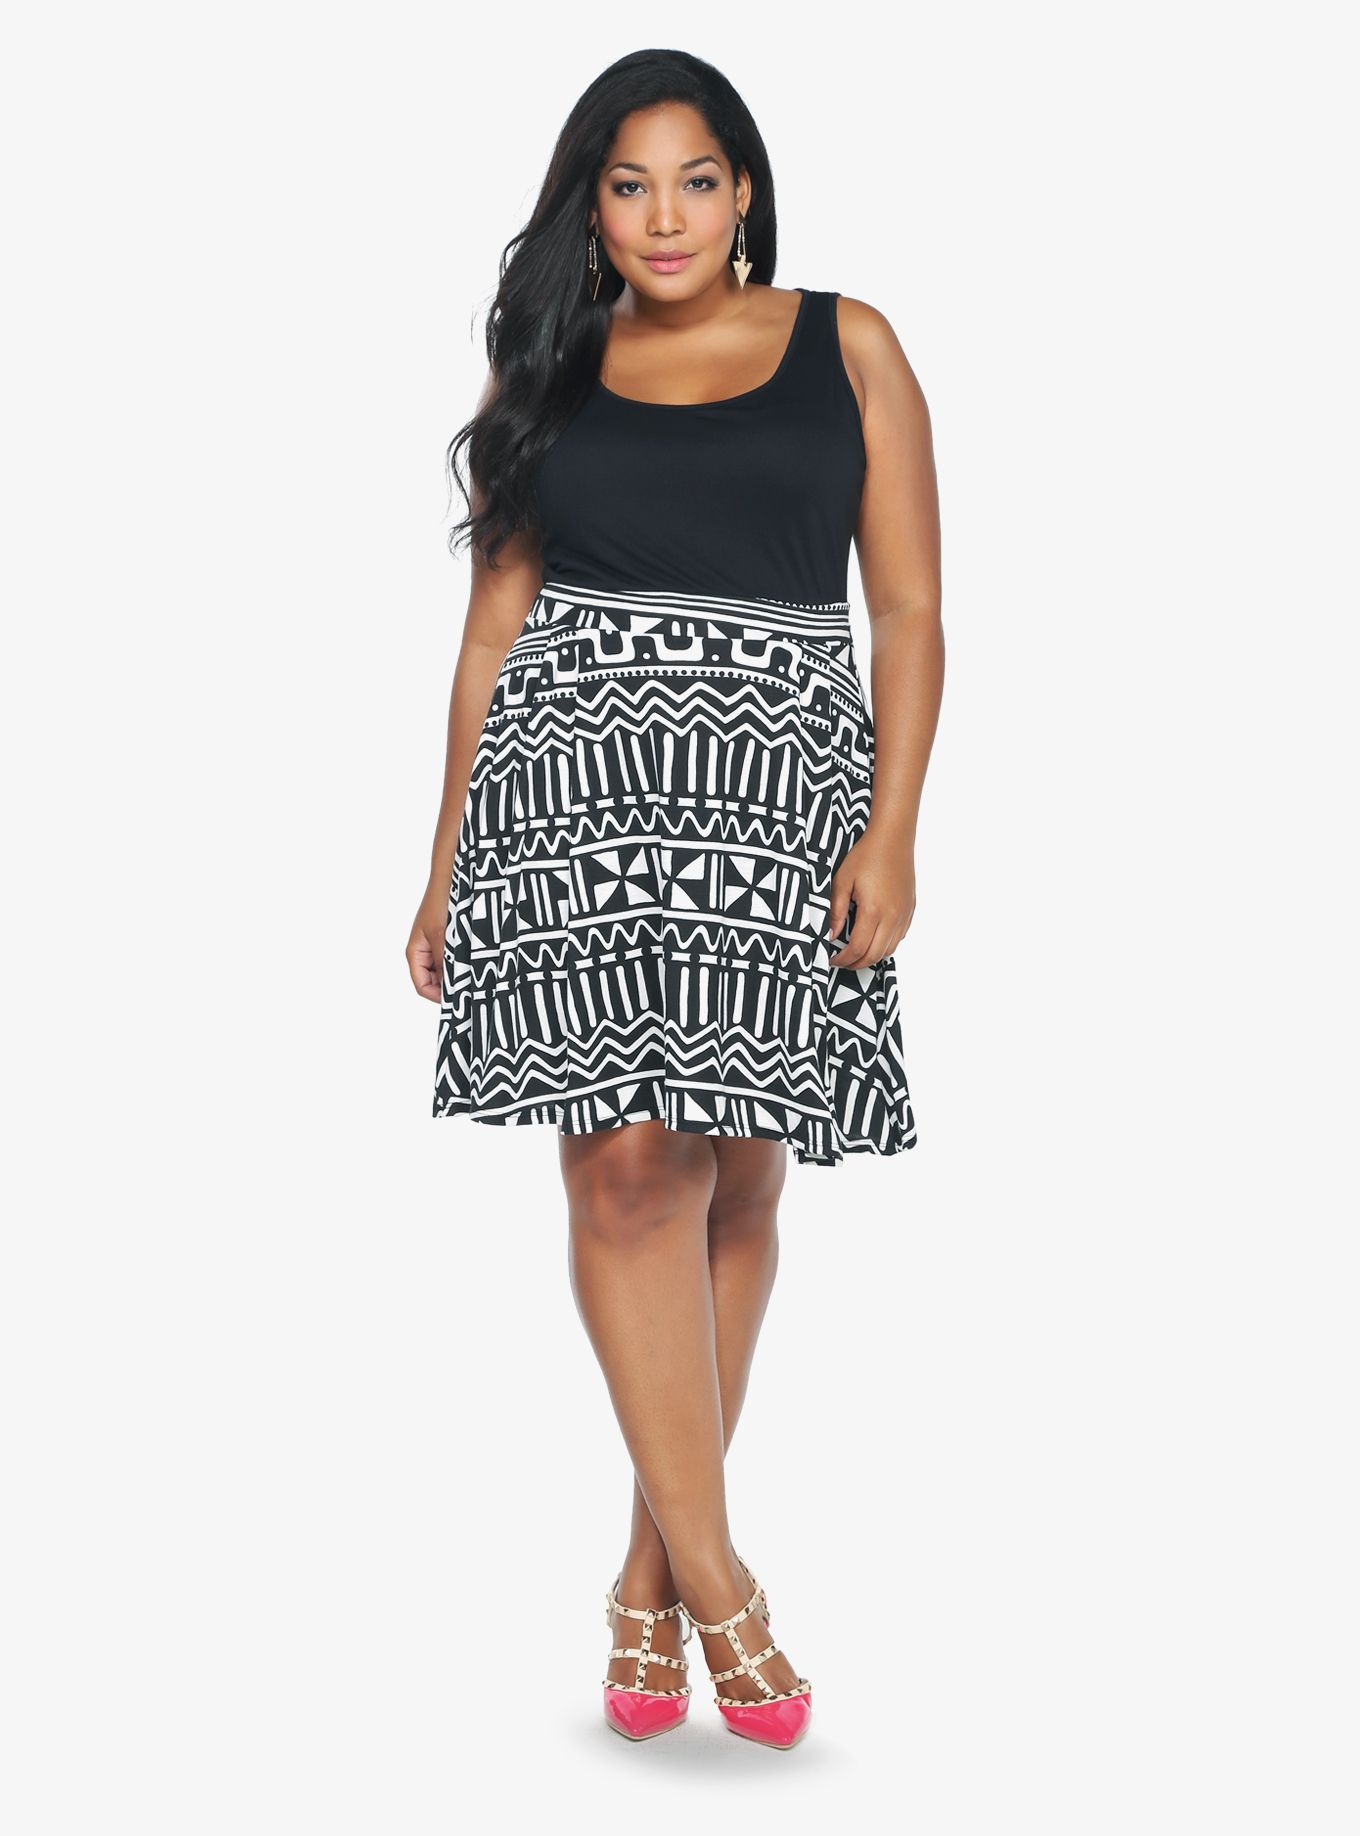 Black & White Tank Dress | Torrid | Spring and Summer Styles ...